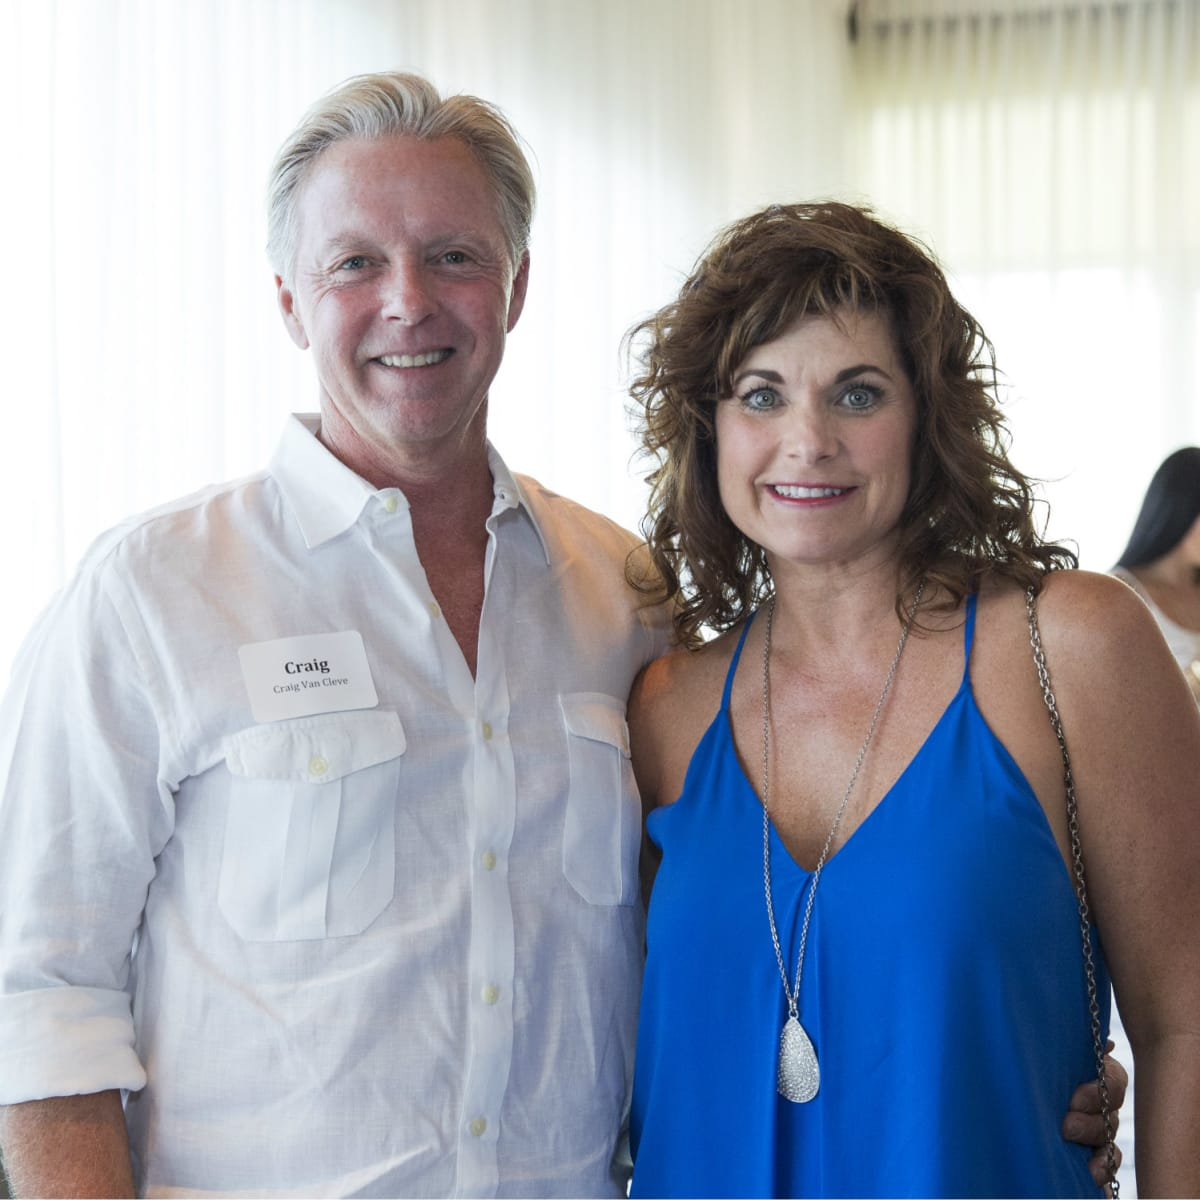 Craig Van Cleve, Tammy Siff